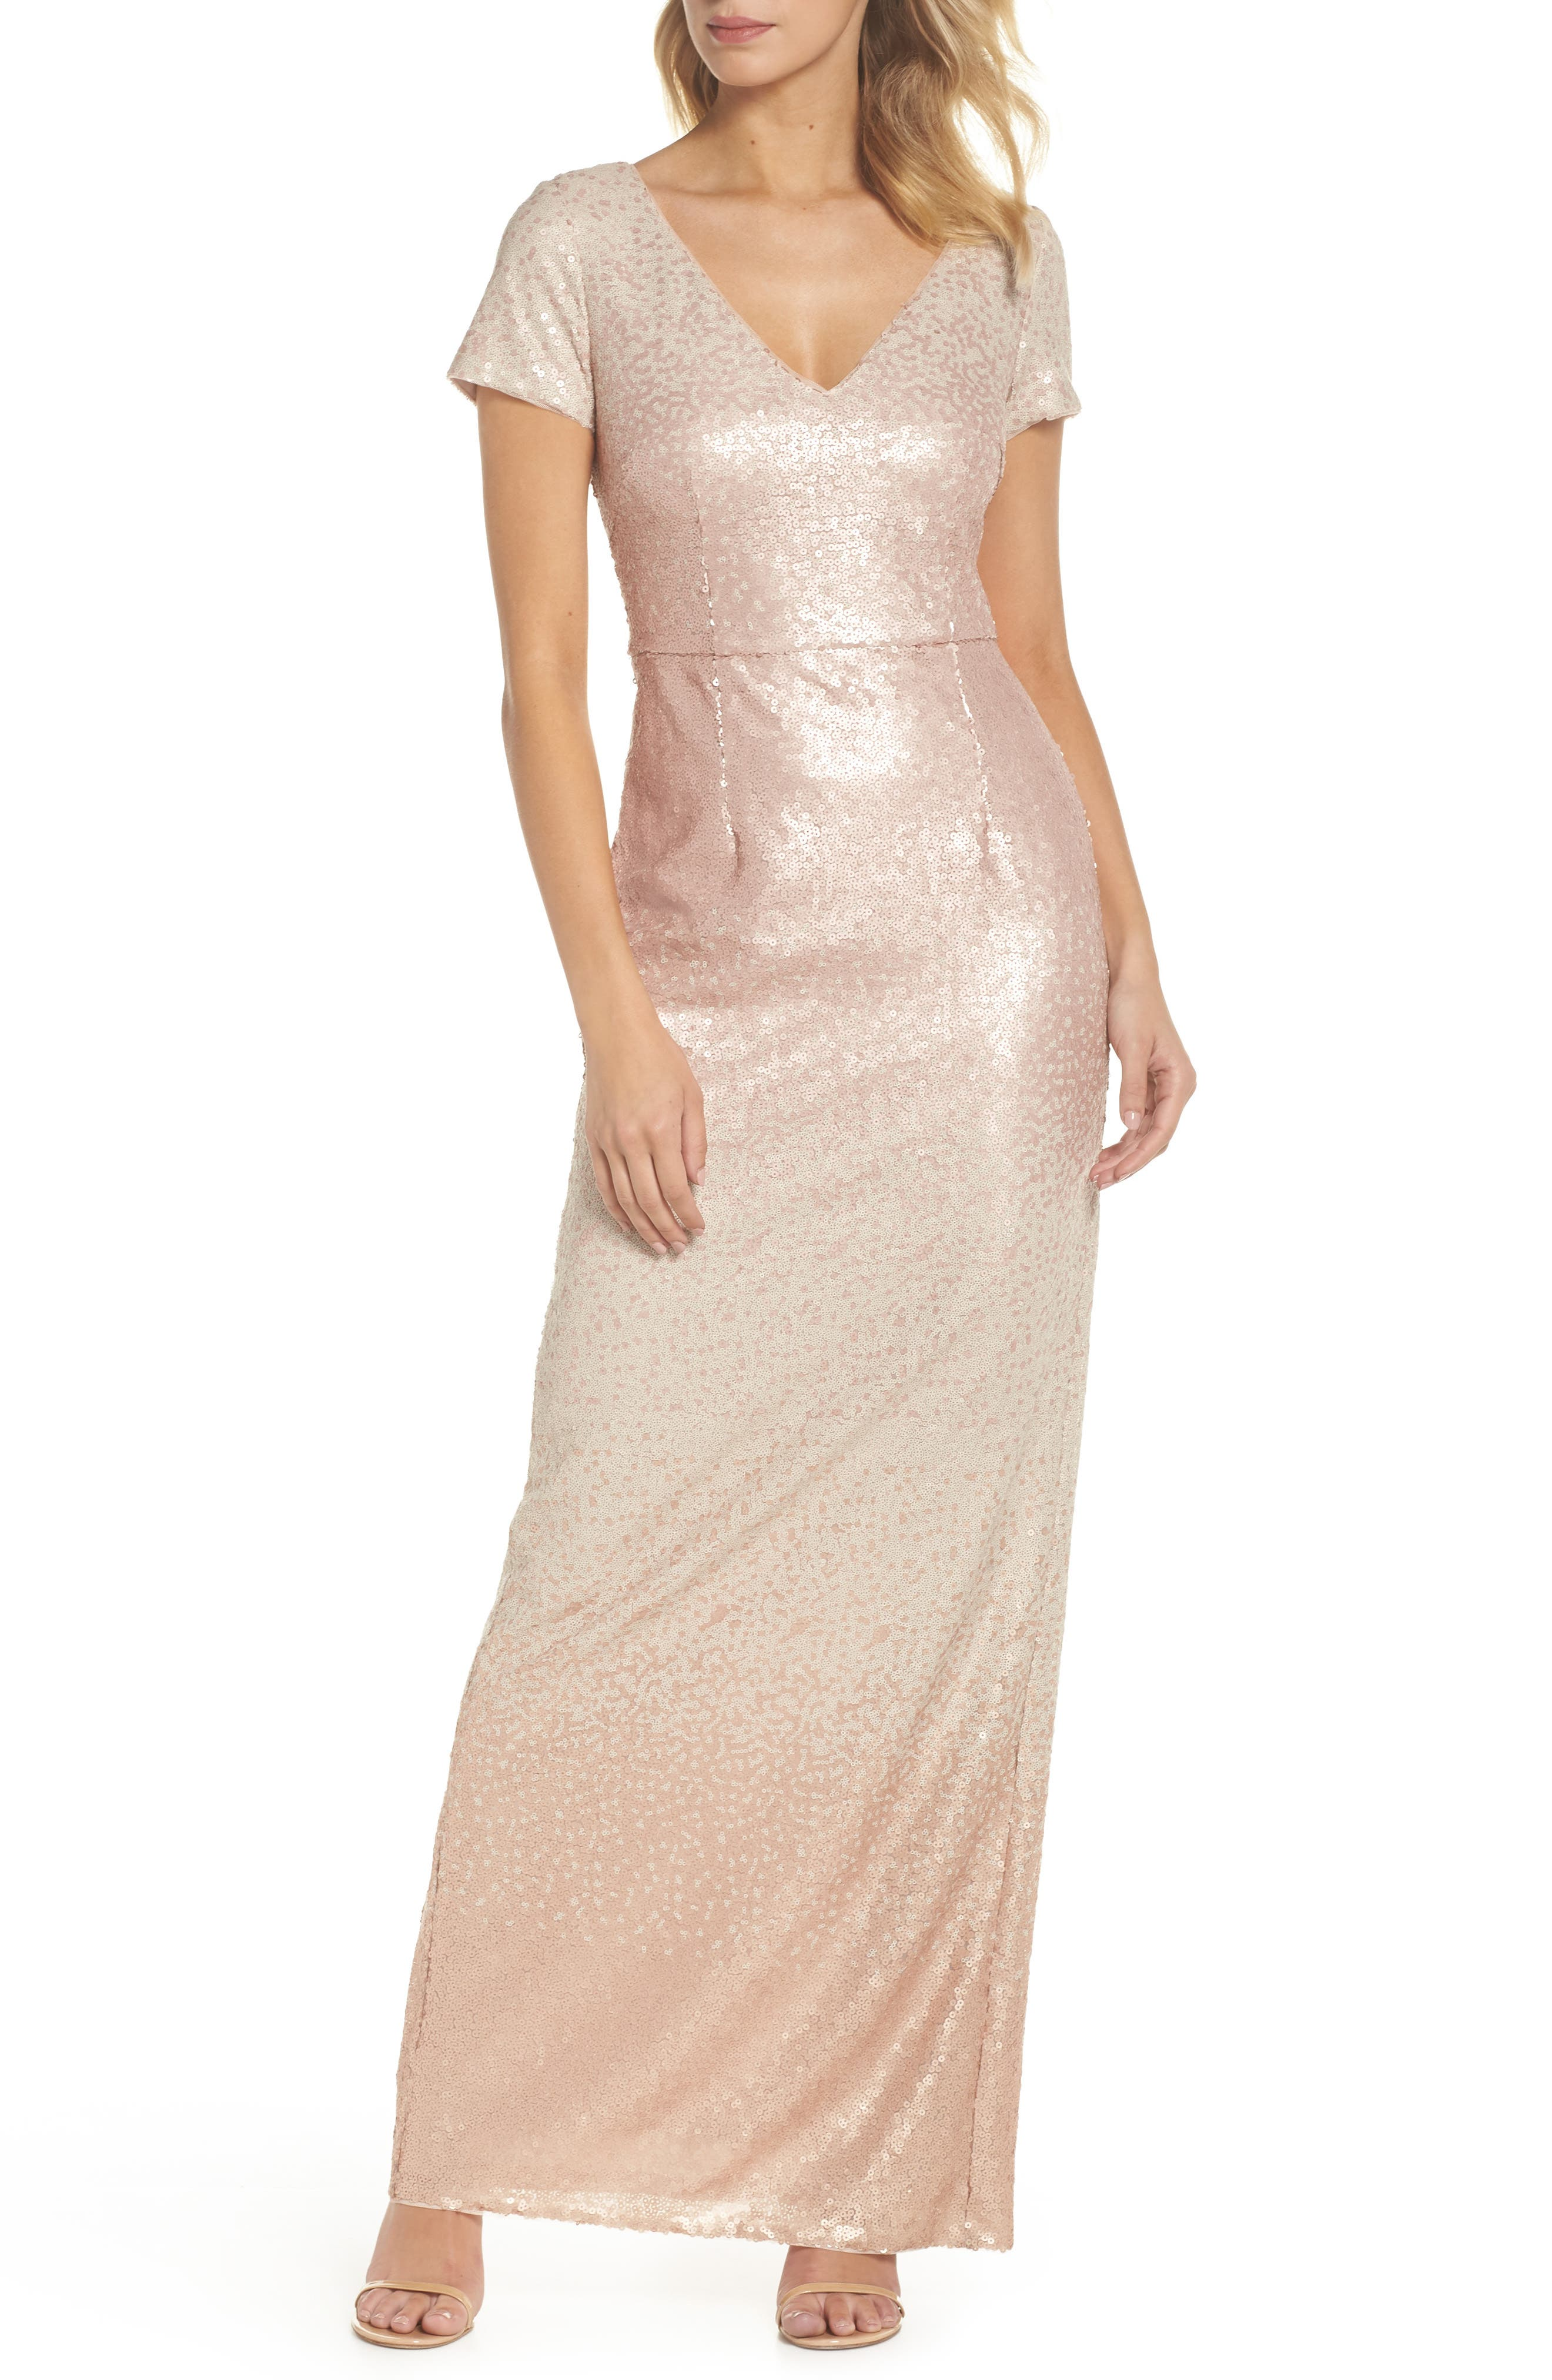 Adrianna Papell Ombré Sequin Gown